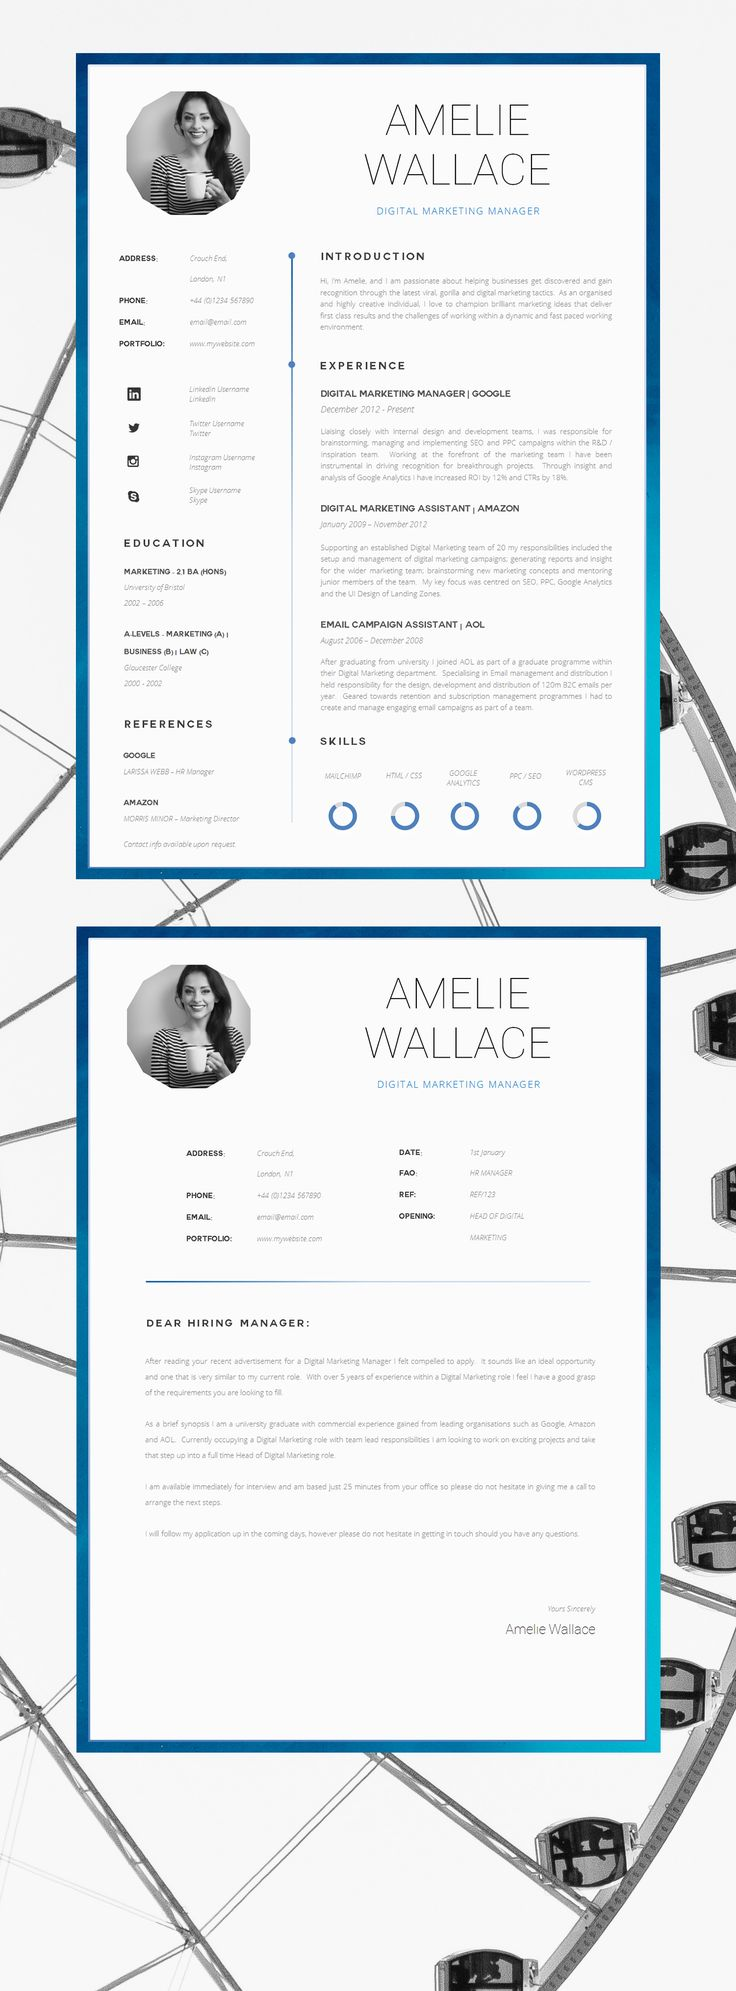 1000 images about biodata for marriage samples on pinterest - Creative Cv